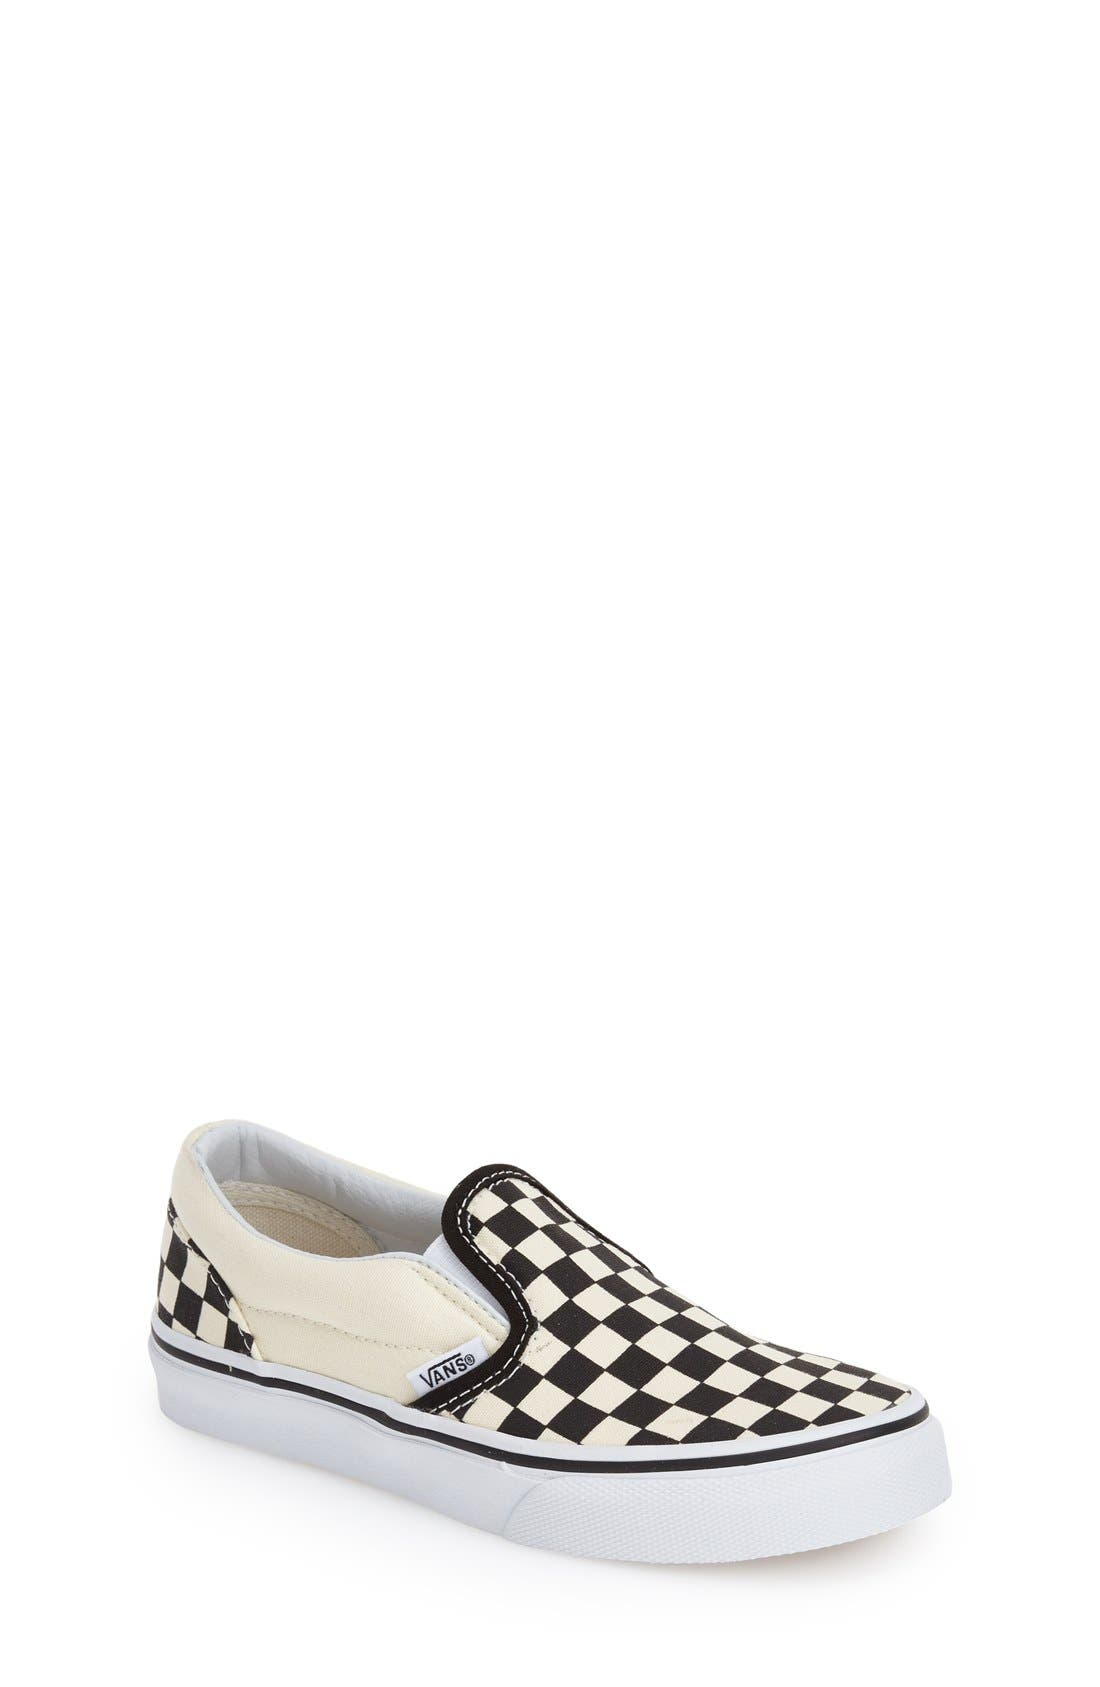 'Classic - Checker' Slip-On,                         Main,                         color, Checkerboard/ Black/ White